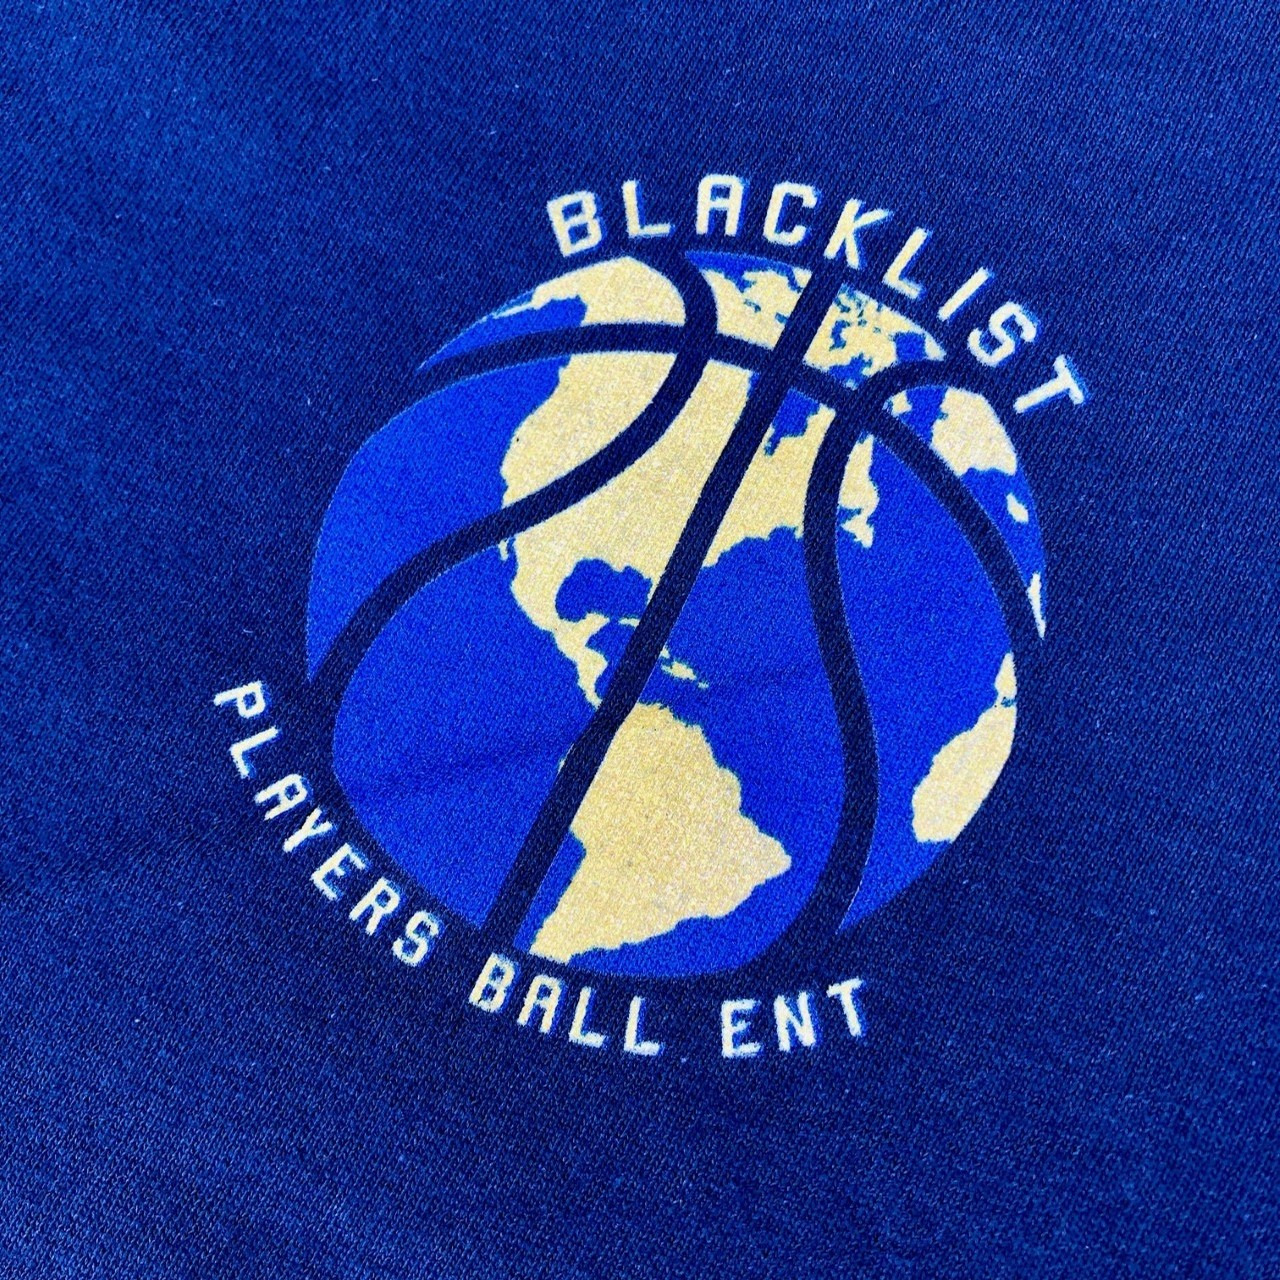 PLAYERS BALL WORLD PEACE TEE (BLUE)